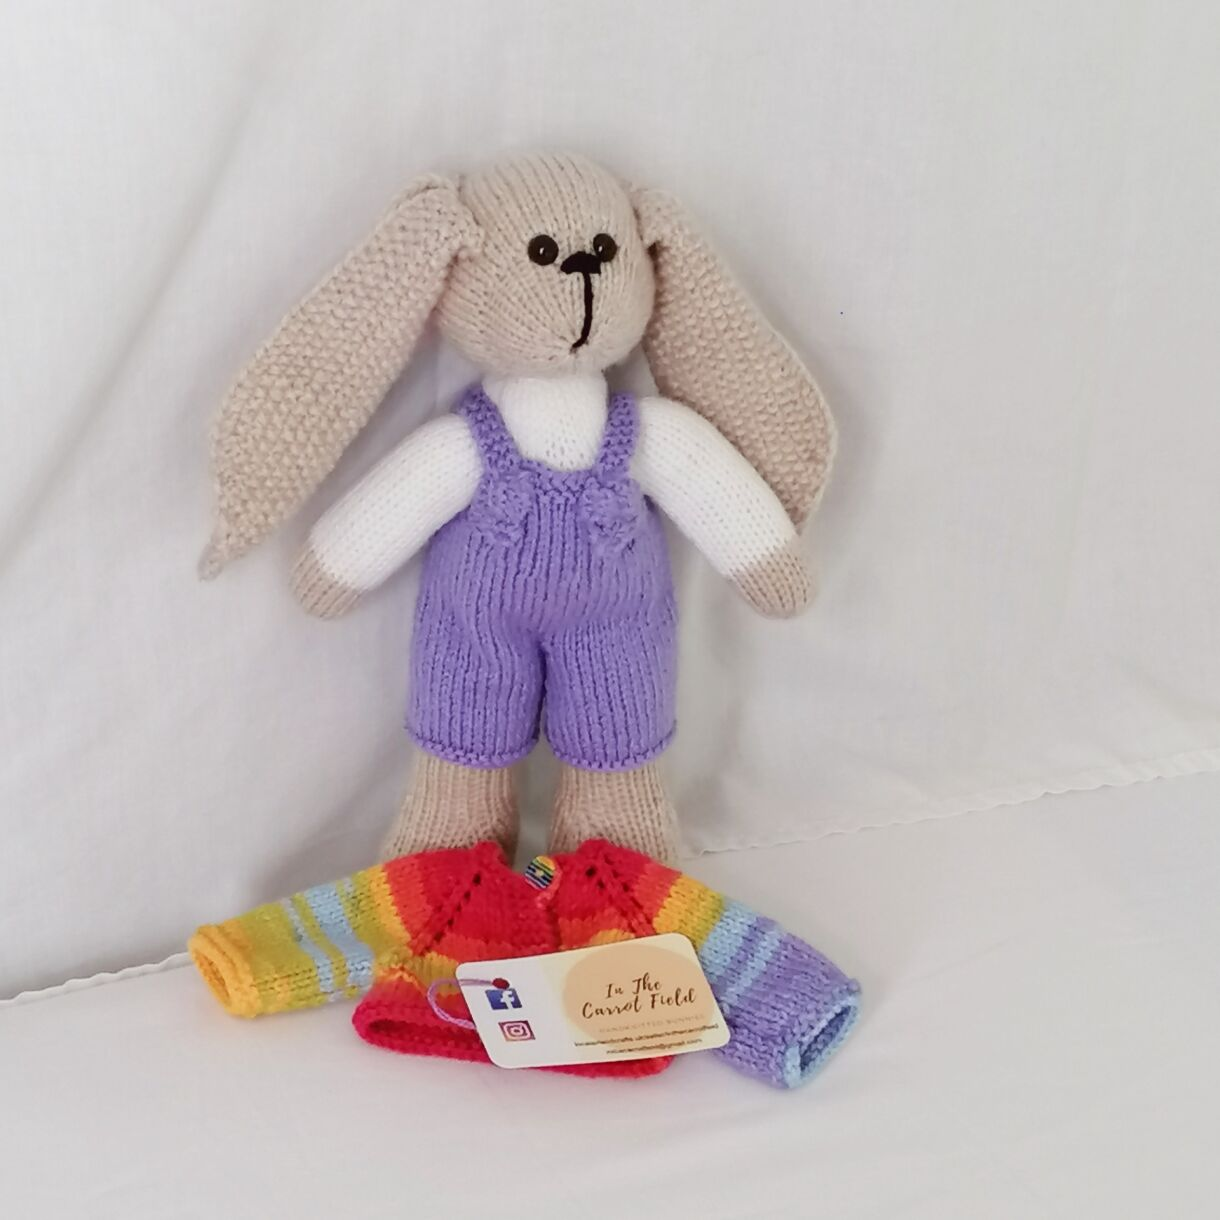 handknitted-rainbow-bunny-unique-gift-purple-front-no-jacket